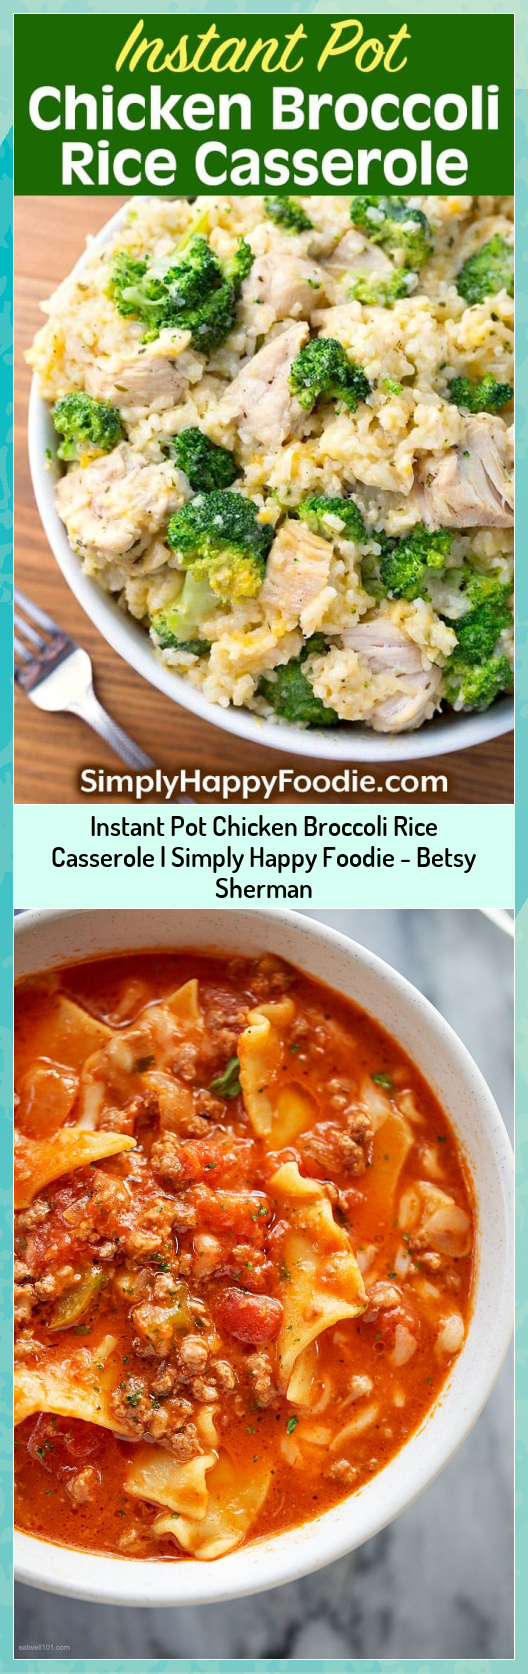 Instant Pot Chicken Broccoli Rice Casserole   Simply Happy Foodie - Betsy Sherman #Betsy #Broccoli #Casserole #Chicken #Foodie #Happy #Instant #Pot #Rice #Sherman #Simply